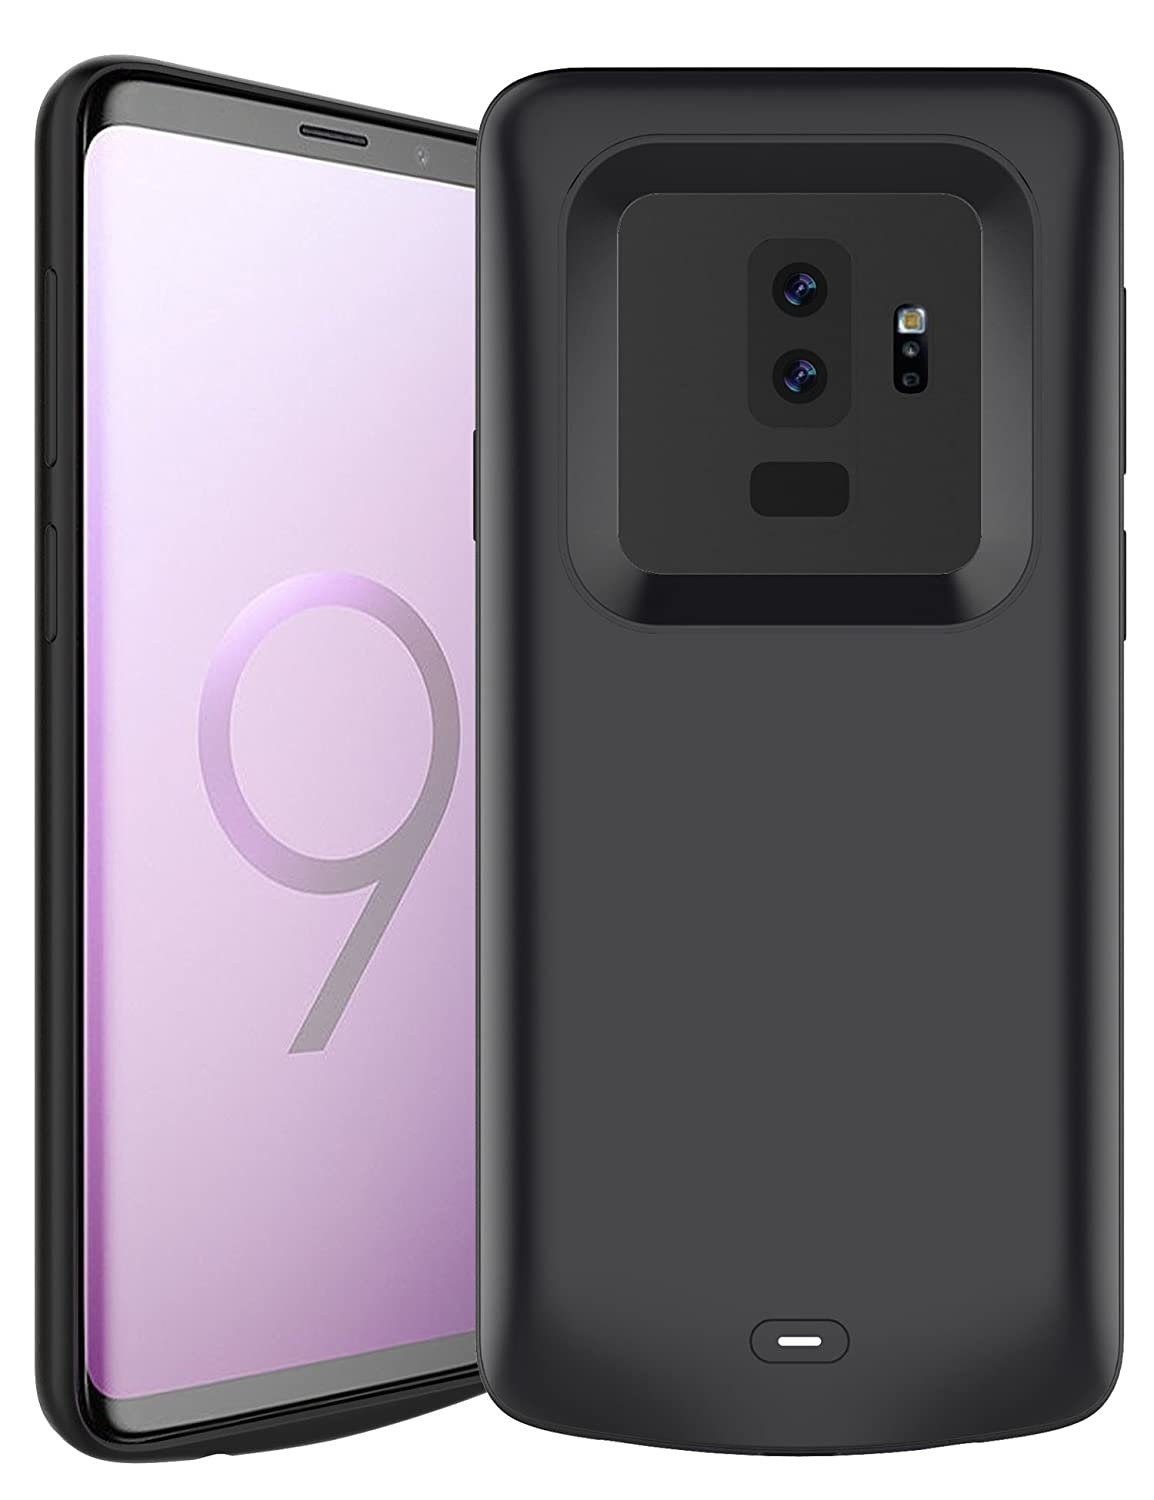 Pumier Samsung Galaxy S9 Plus Battery Case, 5200mAh Rechargeable Extended Protective Portable Backup Charger Case for Samsung Galaxy S9 Plus(for S9+Plus only, not for S9) B6